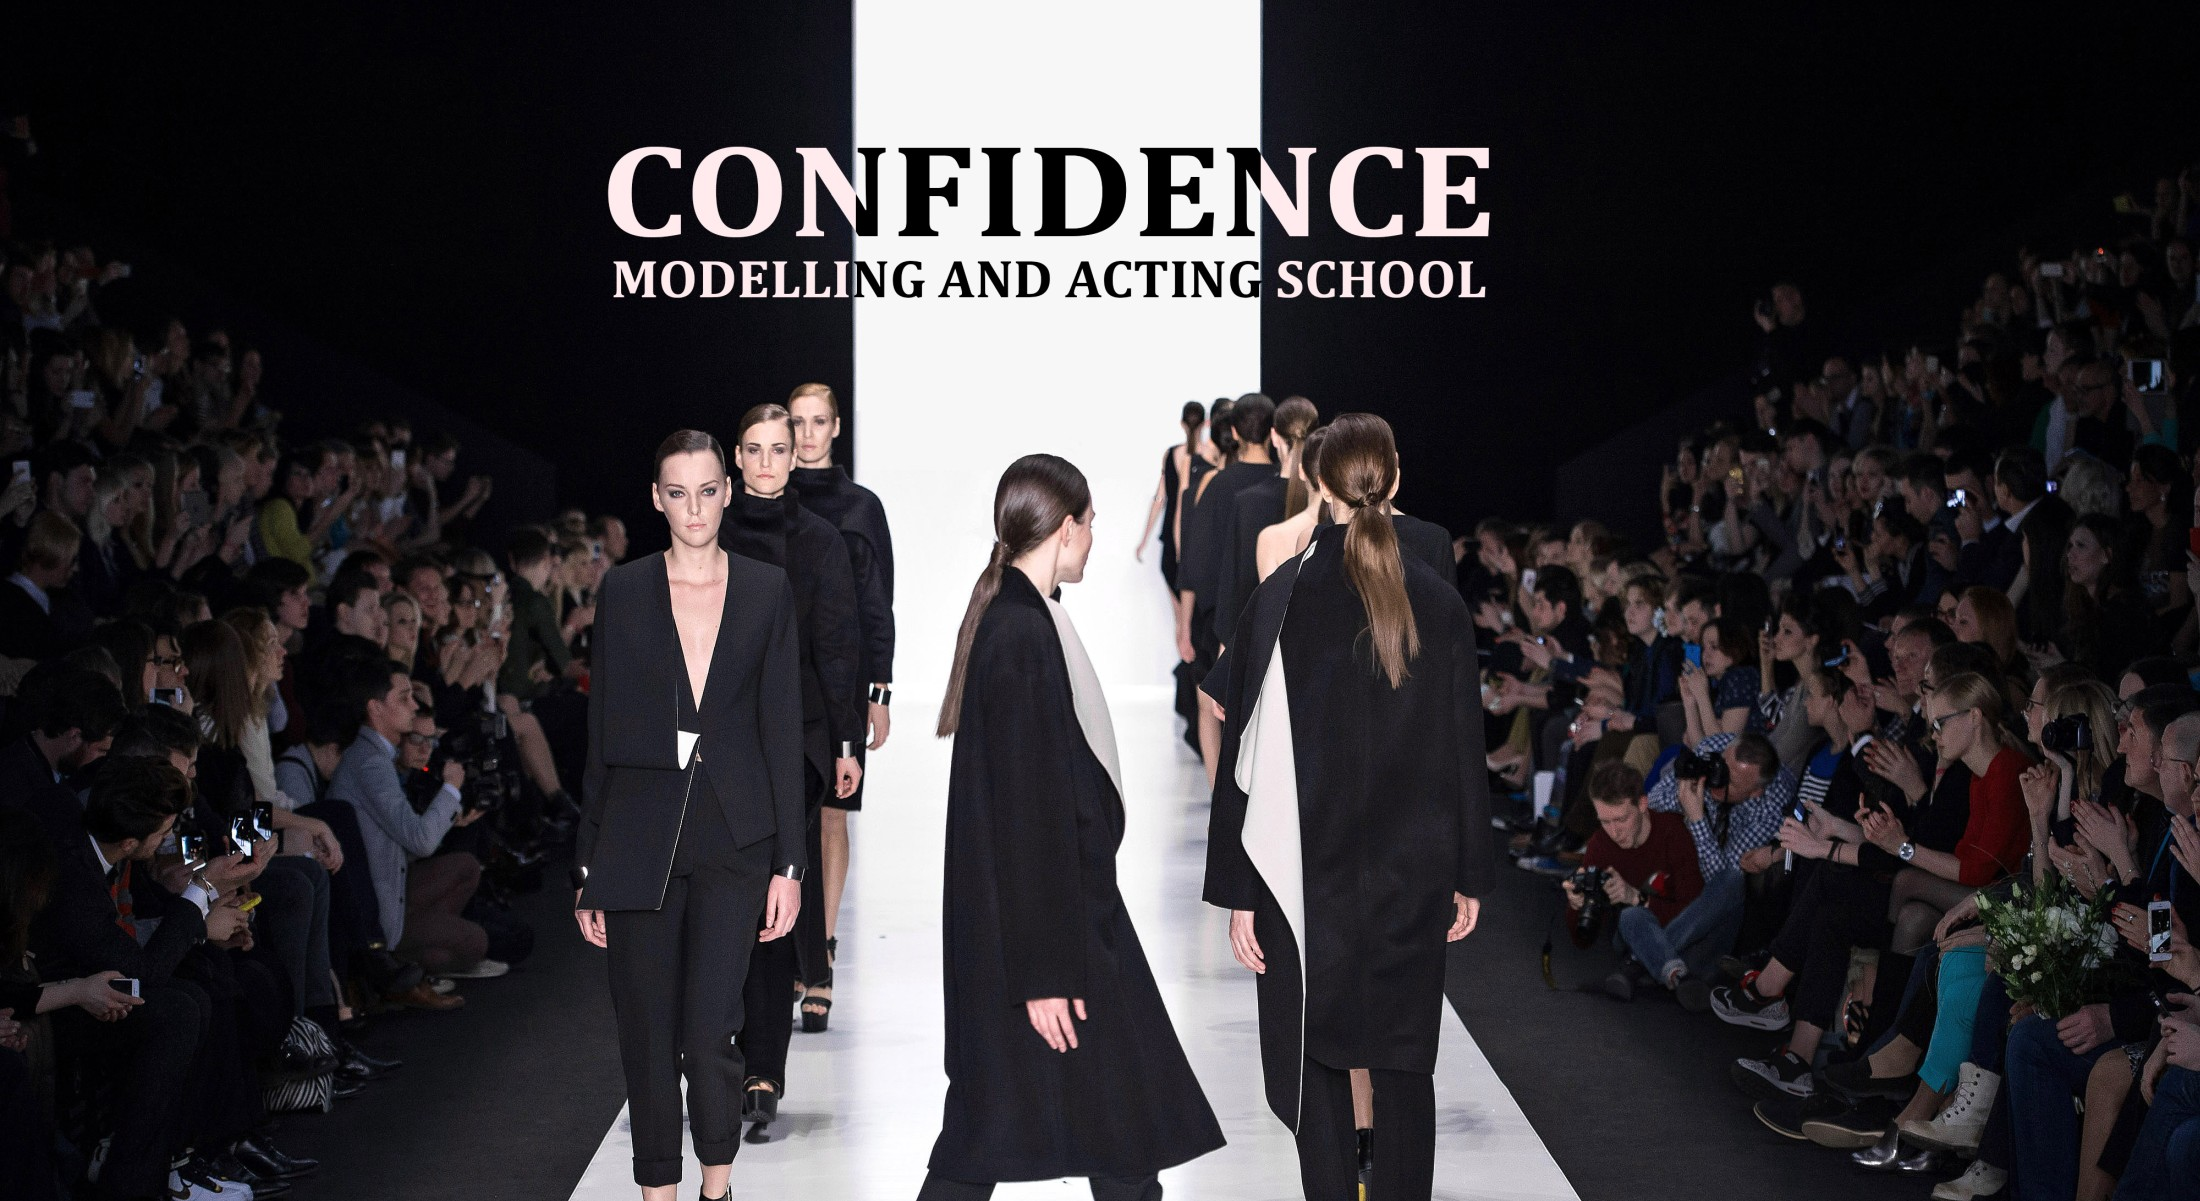 CONFIDENCE: Modeling and Acting school